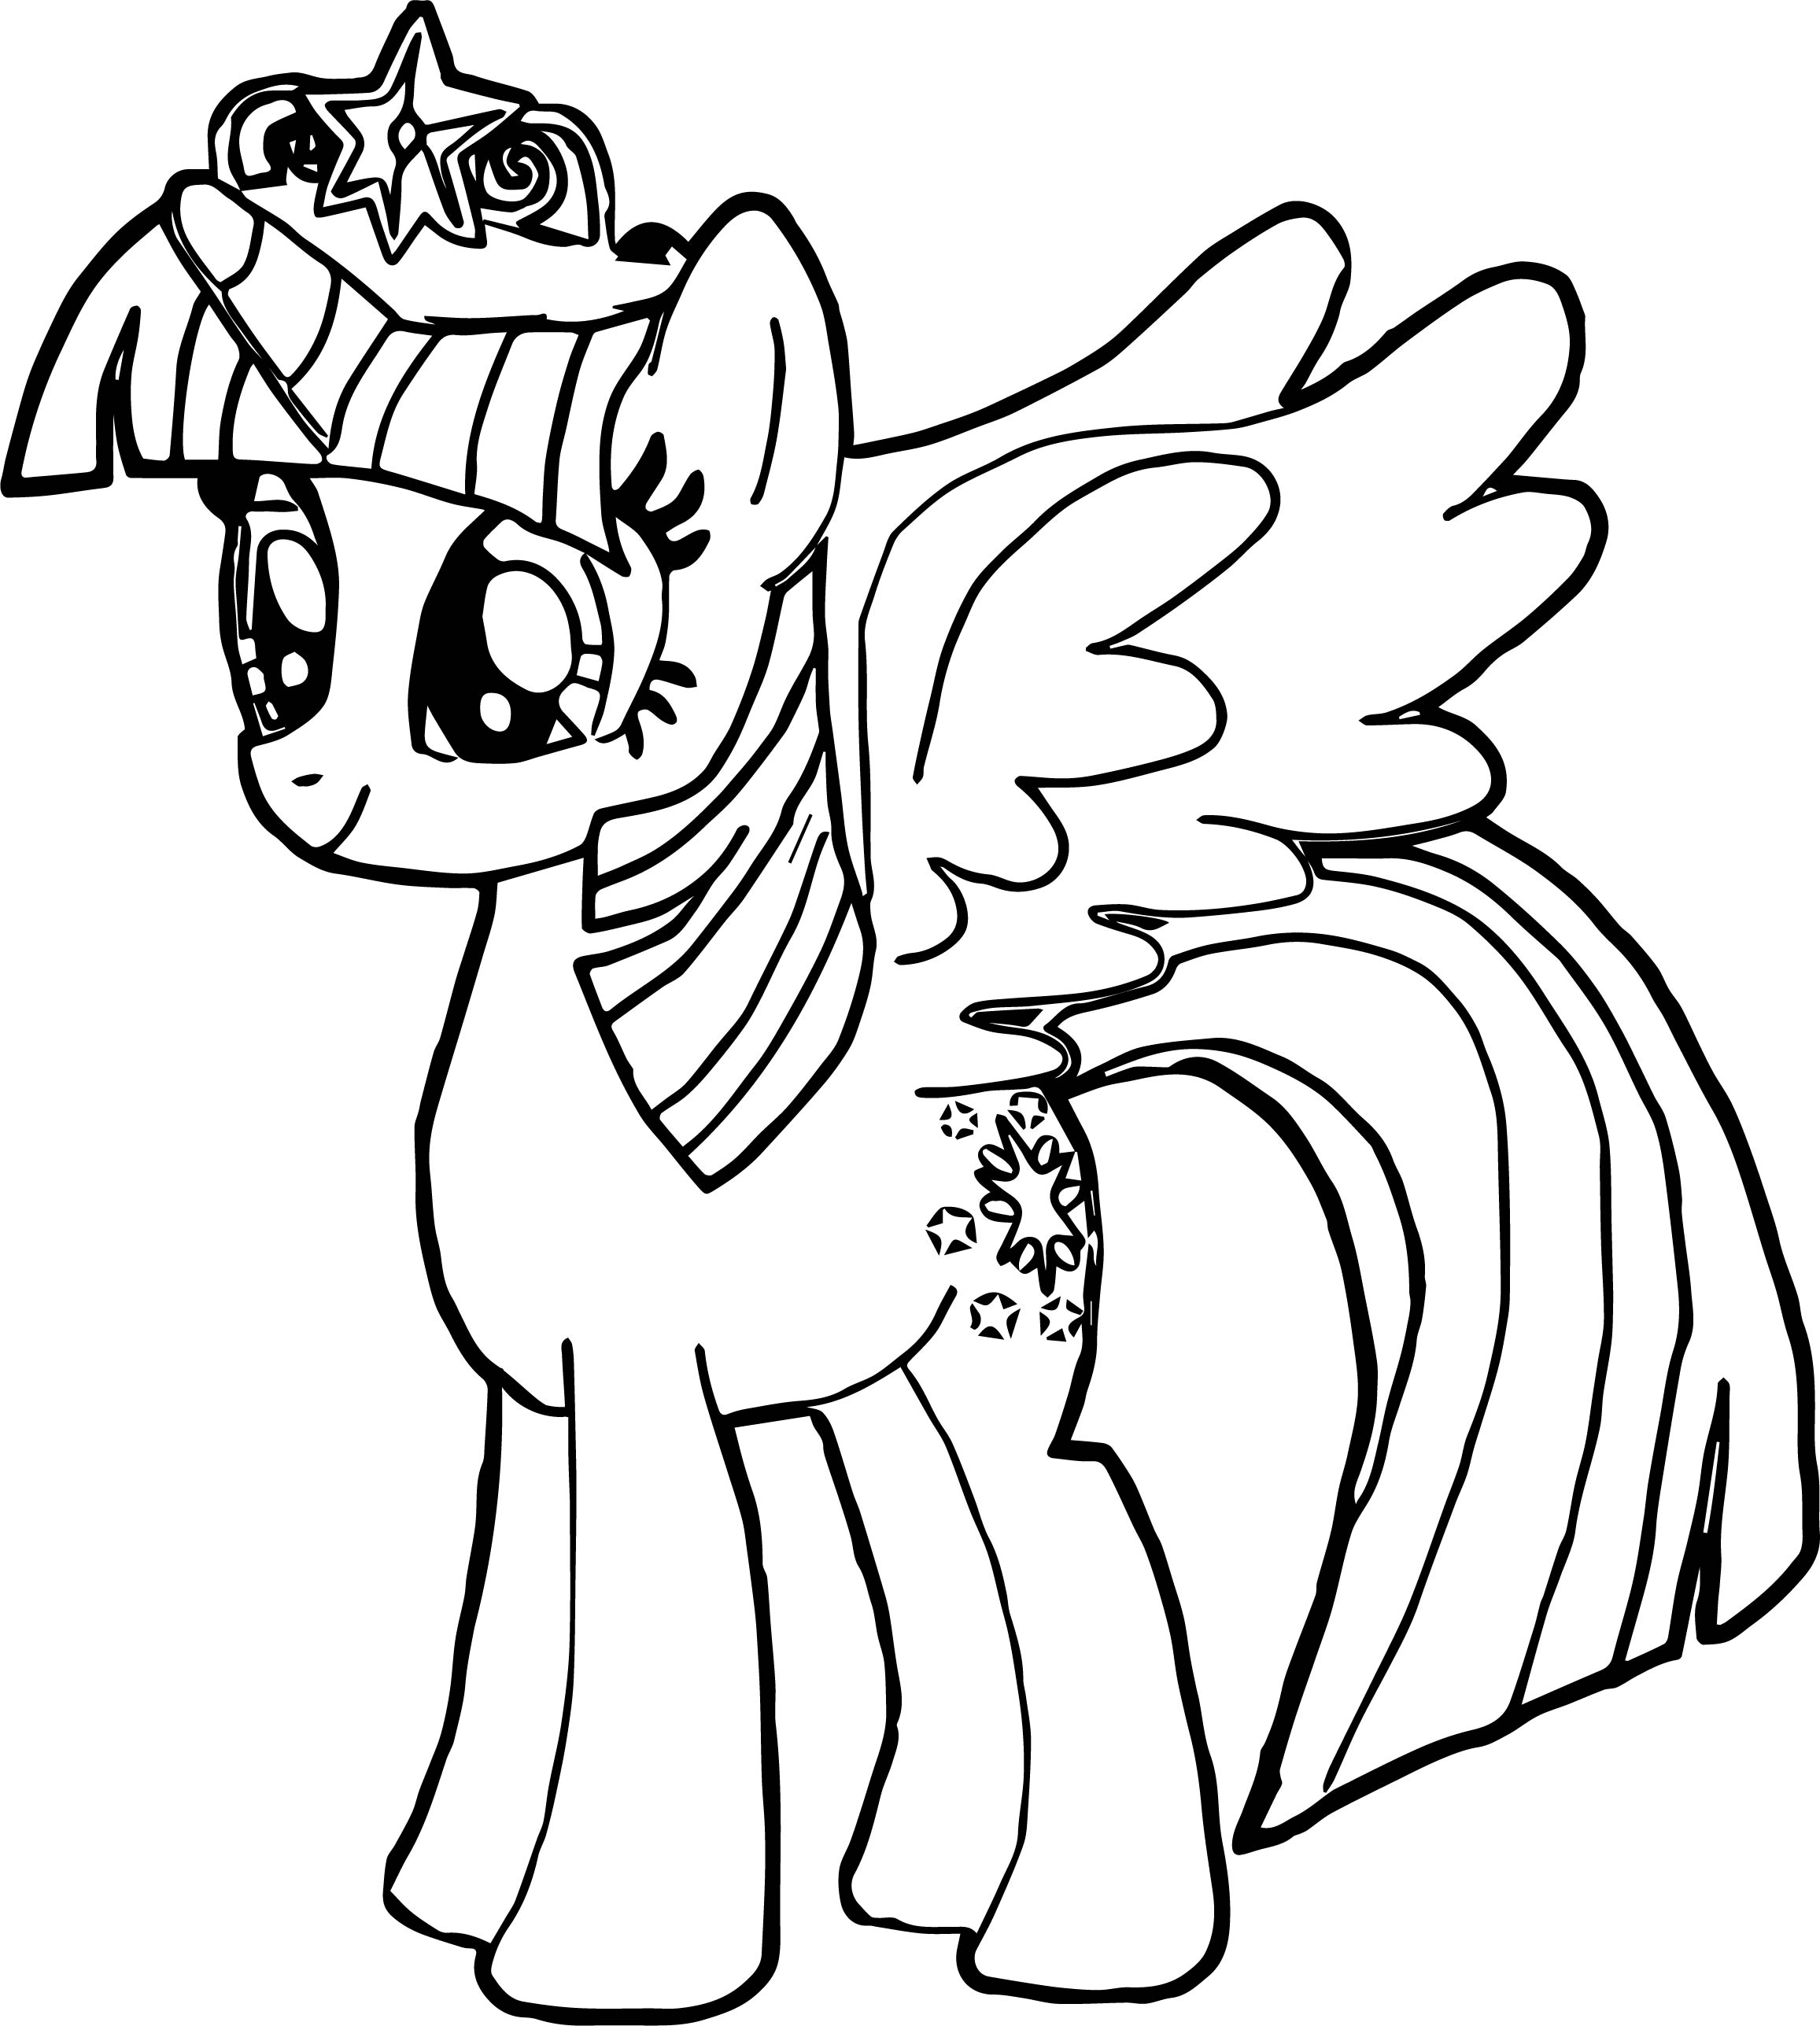 Coloring Pages Of Princess Twilight Sparkle : New princess twilight sparkle coloring page wecoloringpage